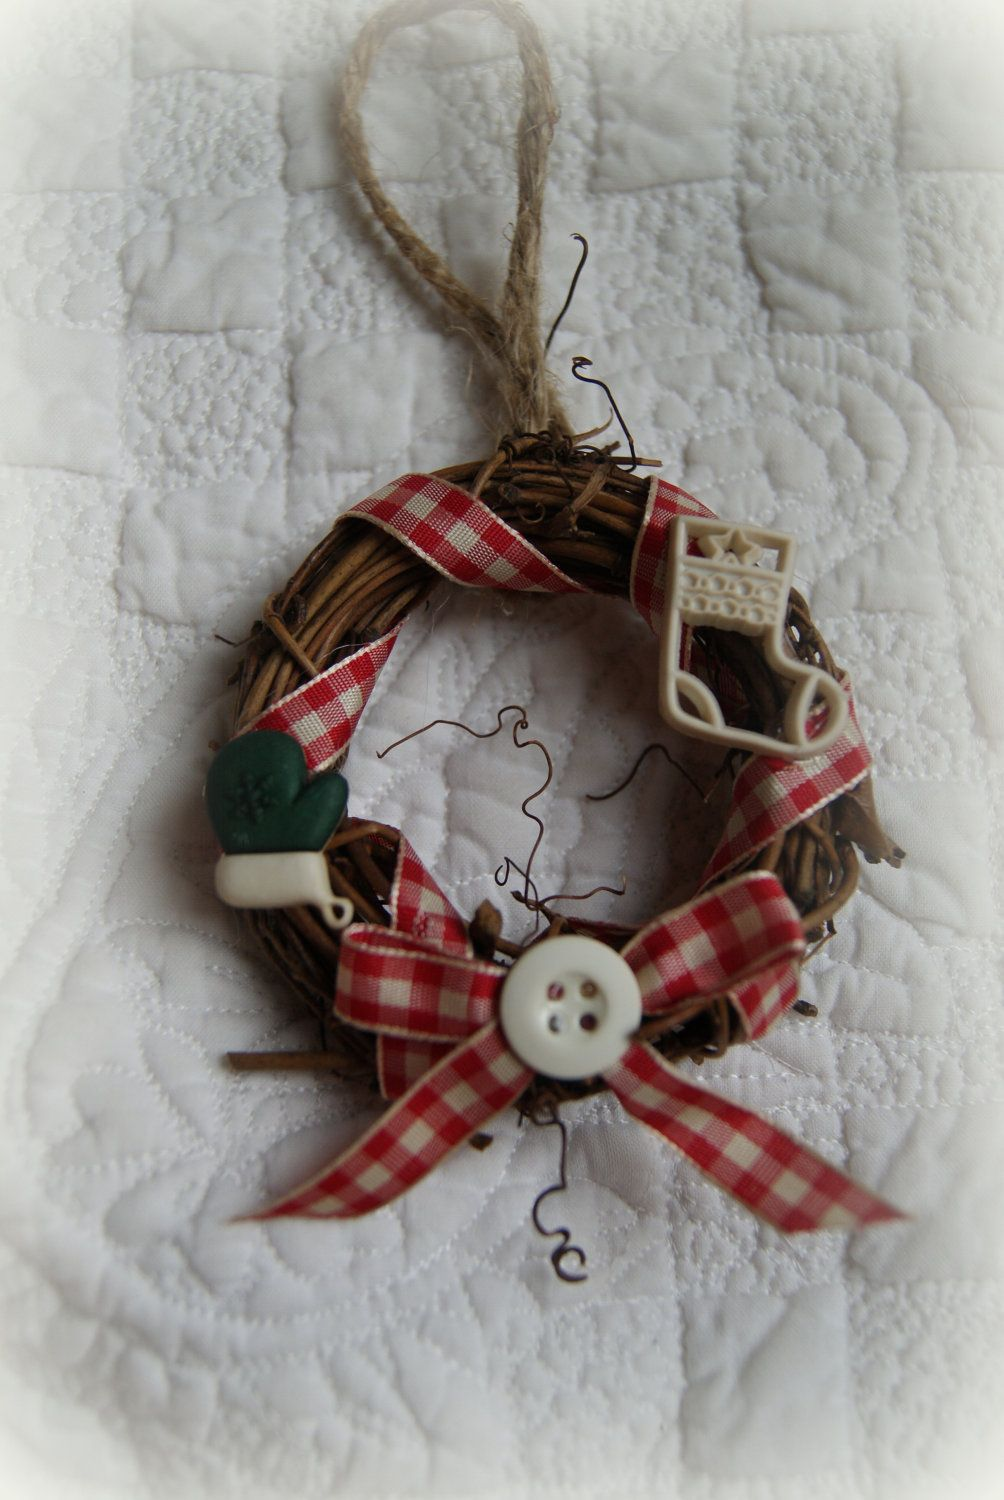 Handcrafted Small Grapevine Wreath Ornament 5 00 Via Etsy Diy Christmas Ornaments Christmas Ornaments Xmas Crafts